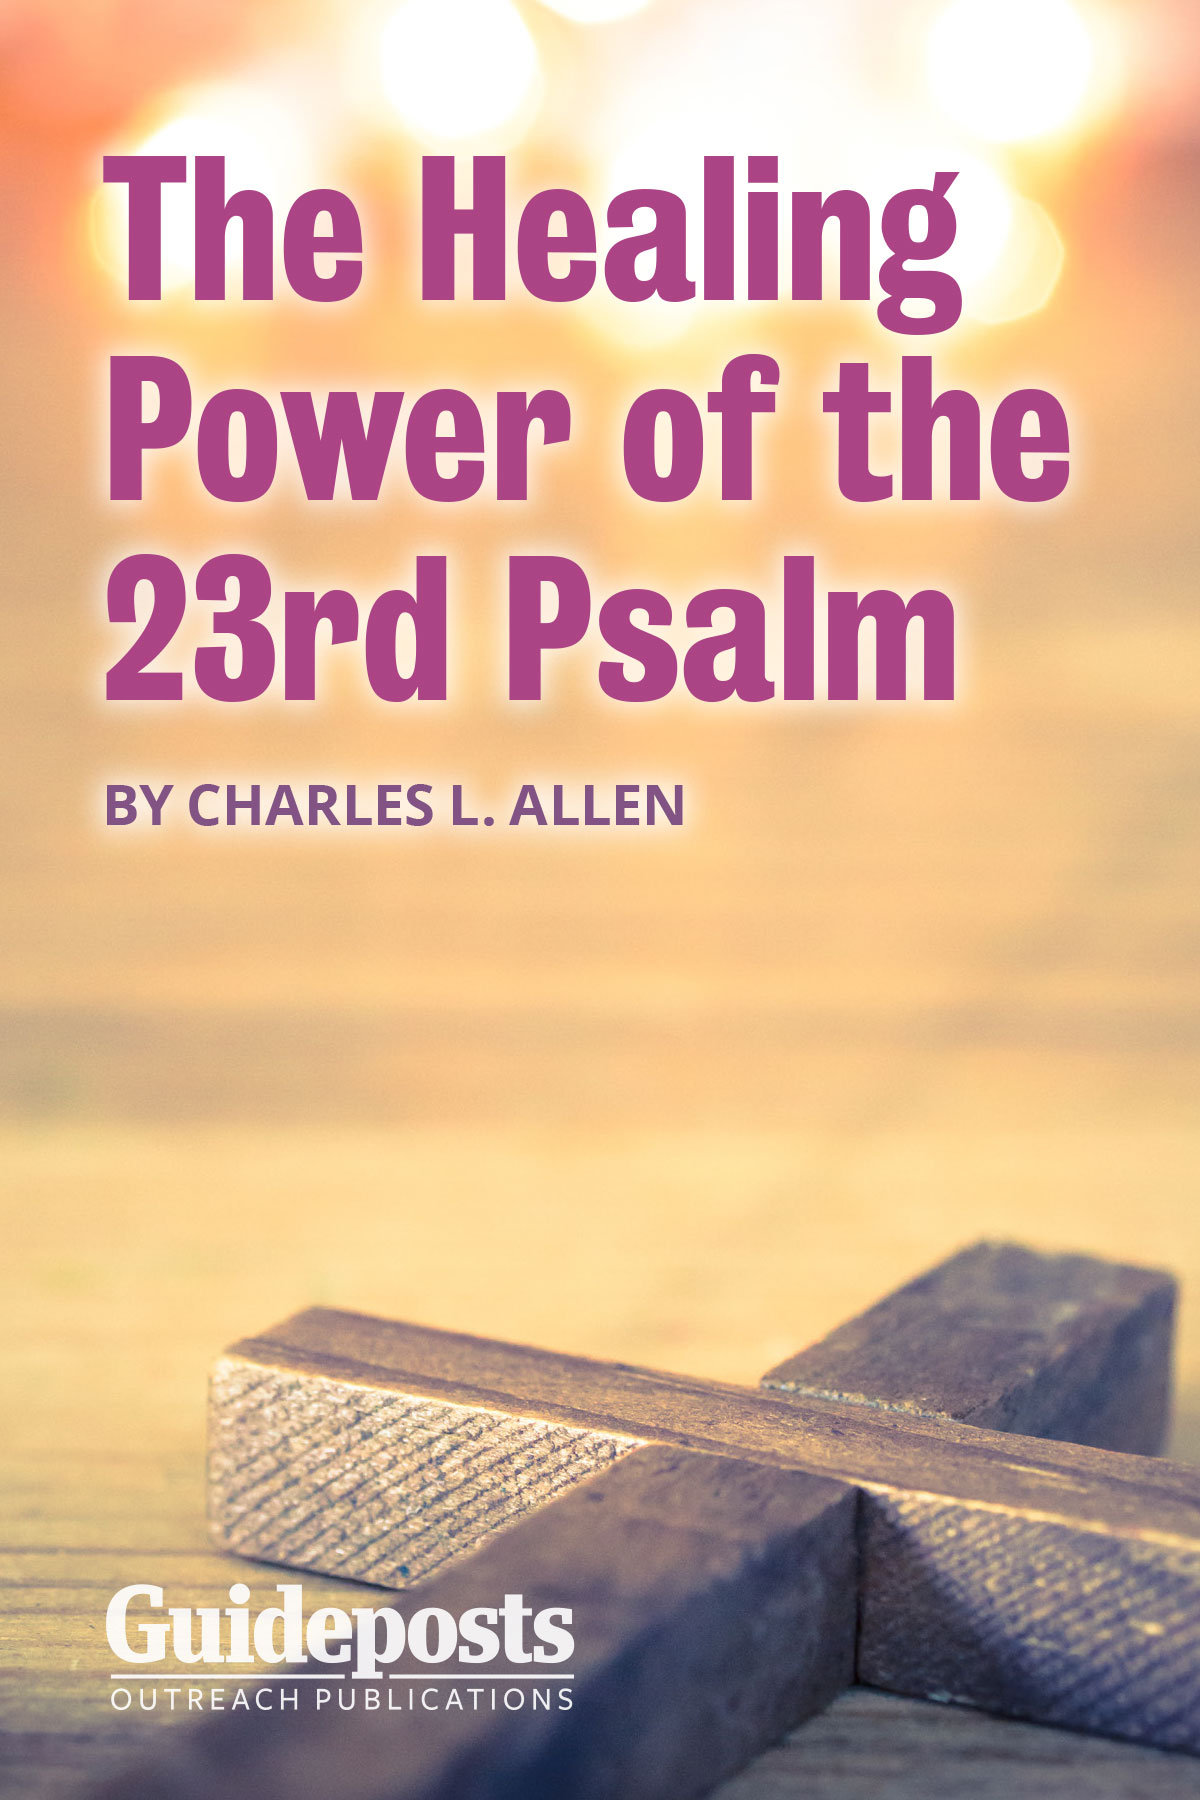 The Healing Power of the 23rd Psalm